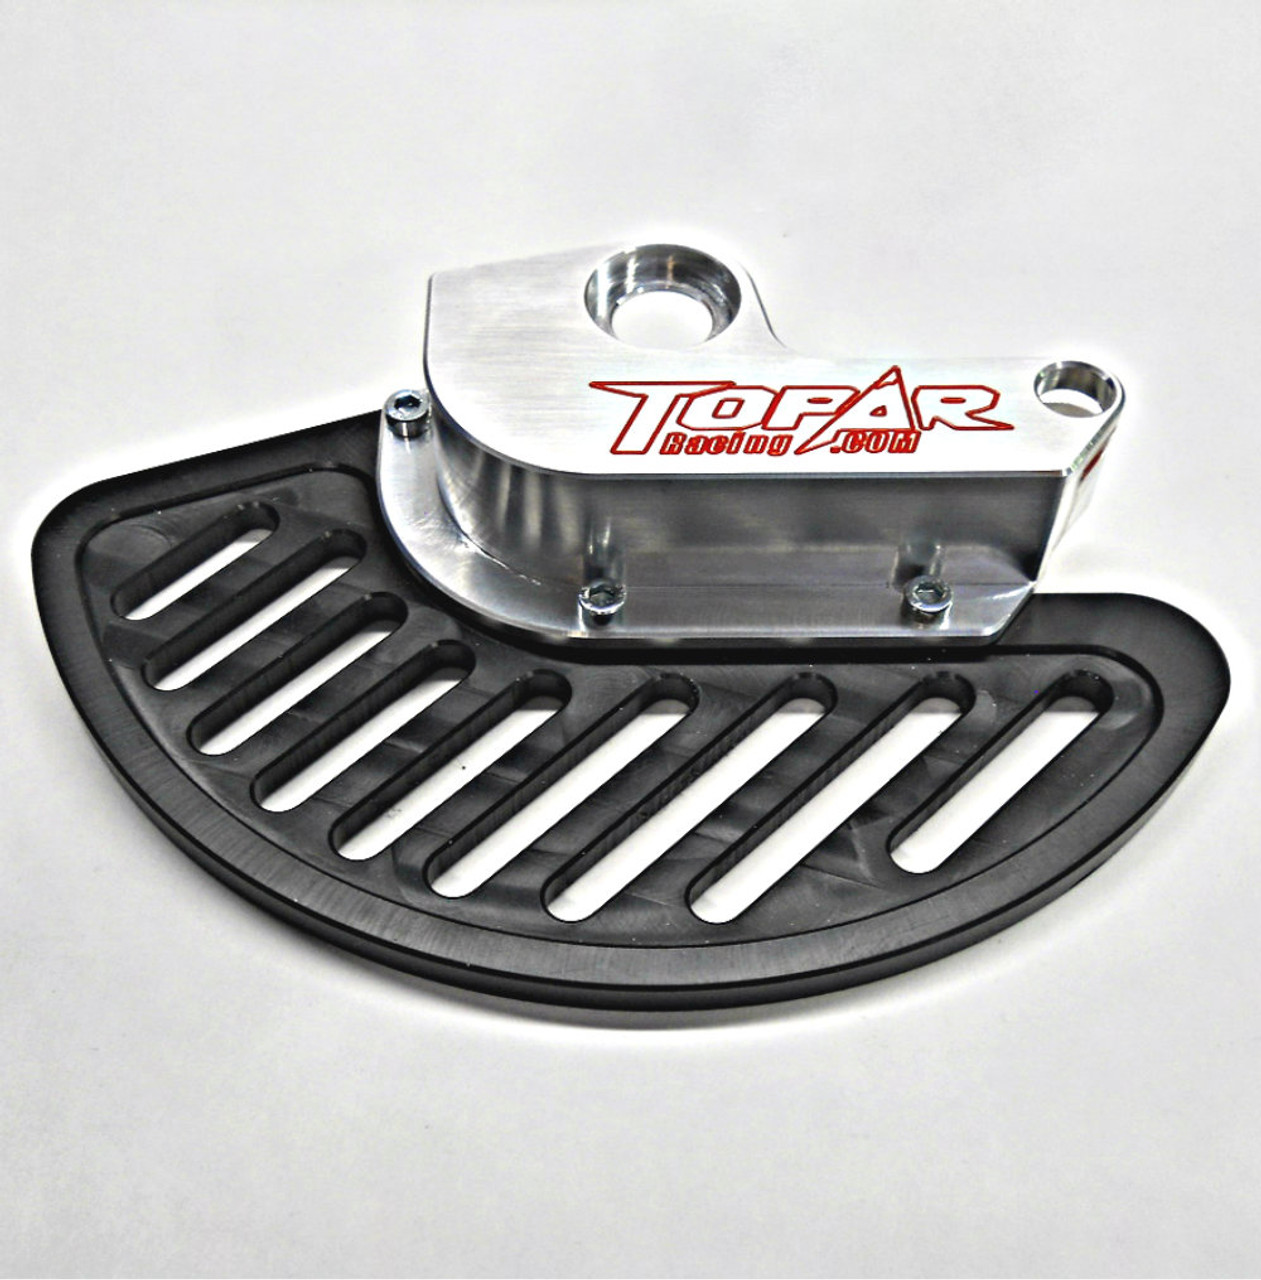 Topar Racing Front Brake Disc Rotor Guard for 2003-2006 KTM - ALL MODELS 125cc to 525cc shown with aluminum fin and no caliper guard and UHMW Plastic Fin option